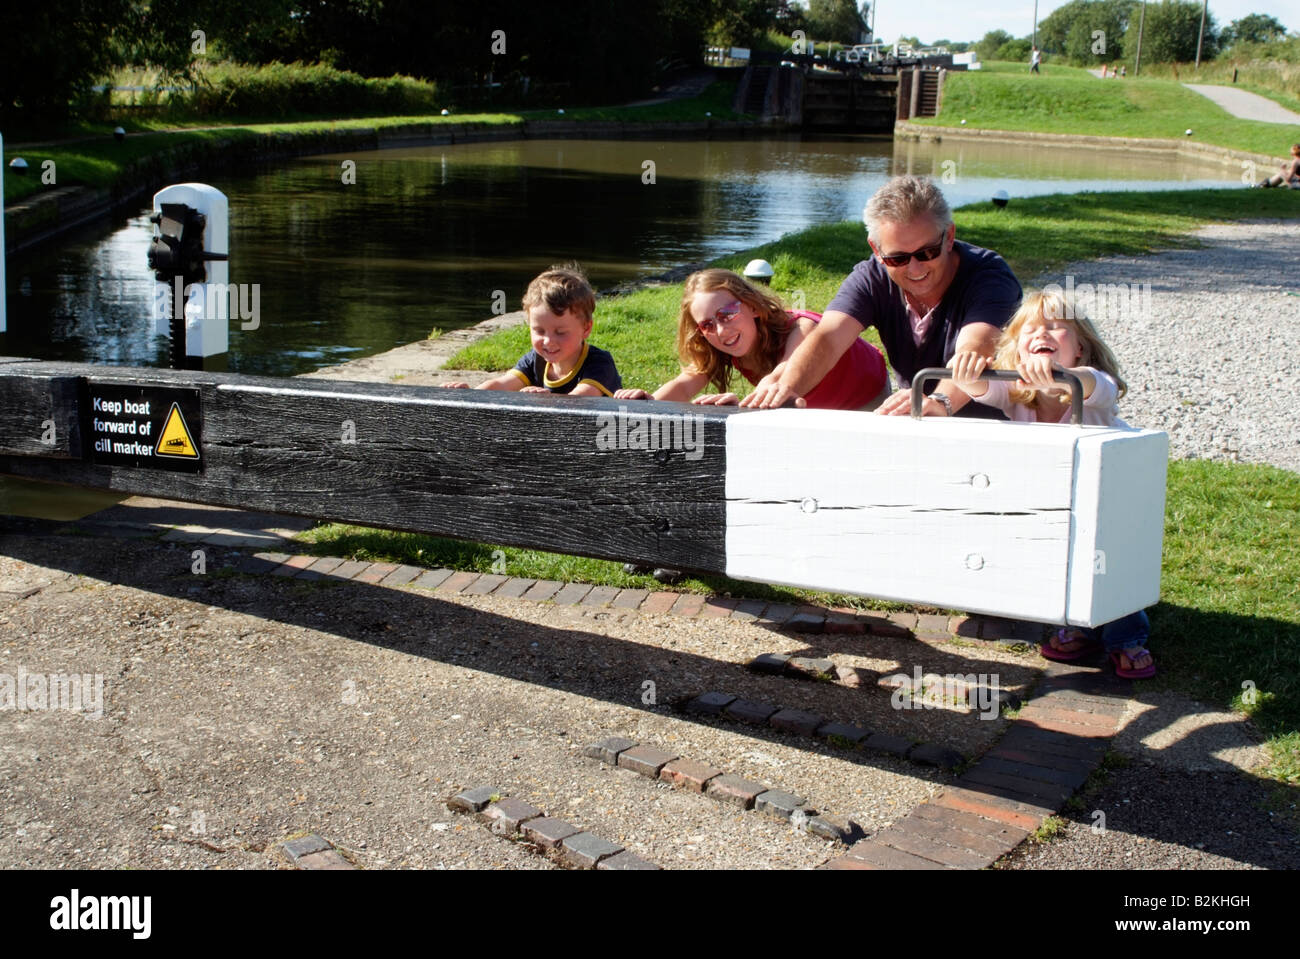 Children on a boating holiday push open lock gate Grand Union Canal England with the help of their father - Stock Image